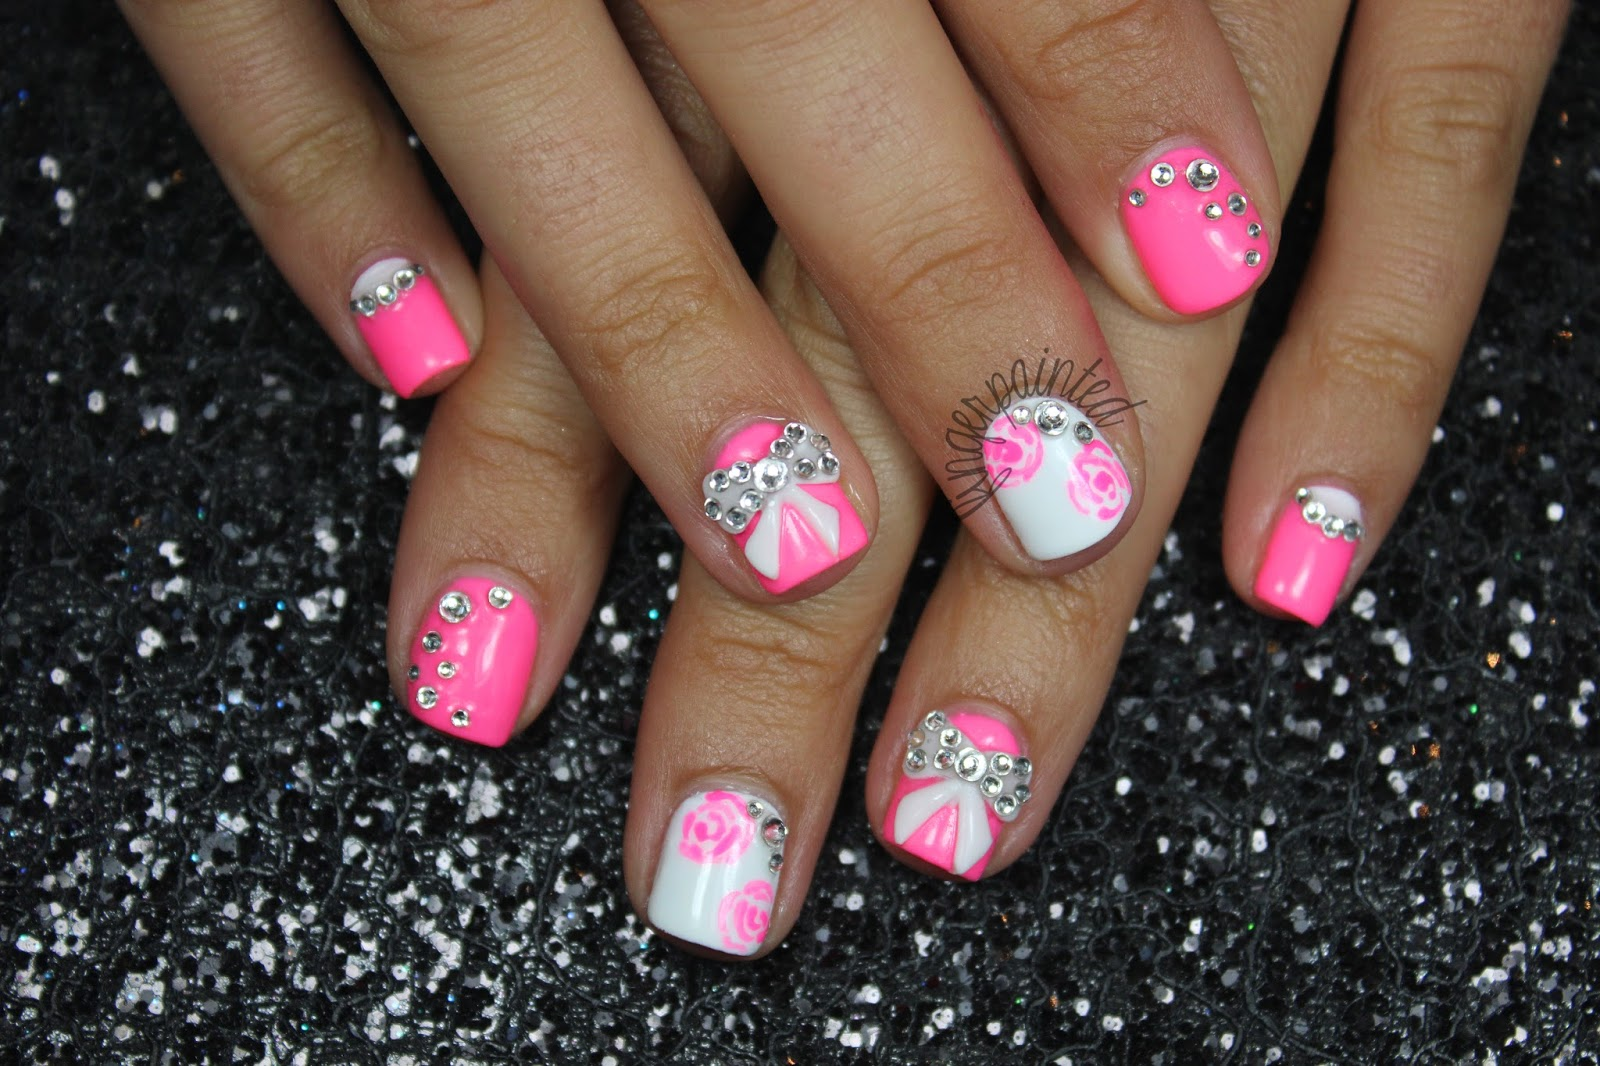 3d Acrylic Nails With Bows - Hot Girls Wallpaper